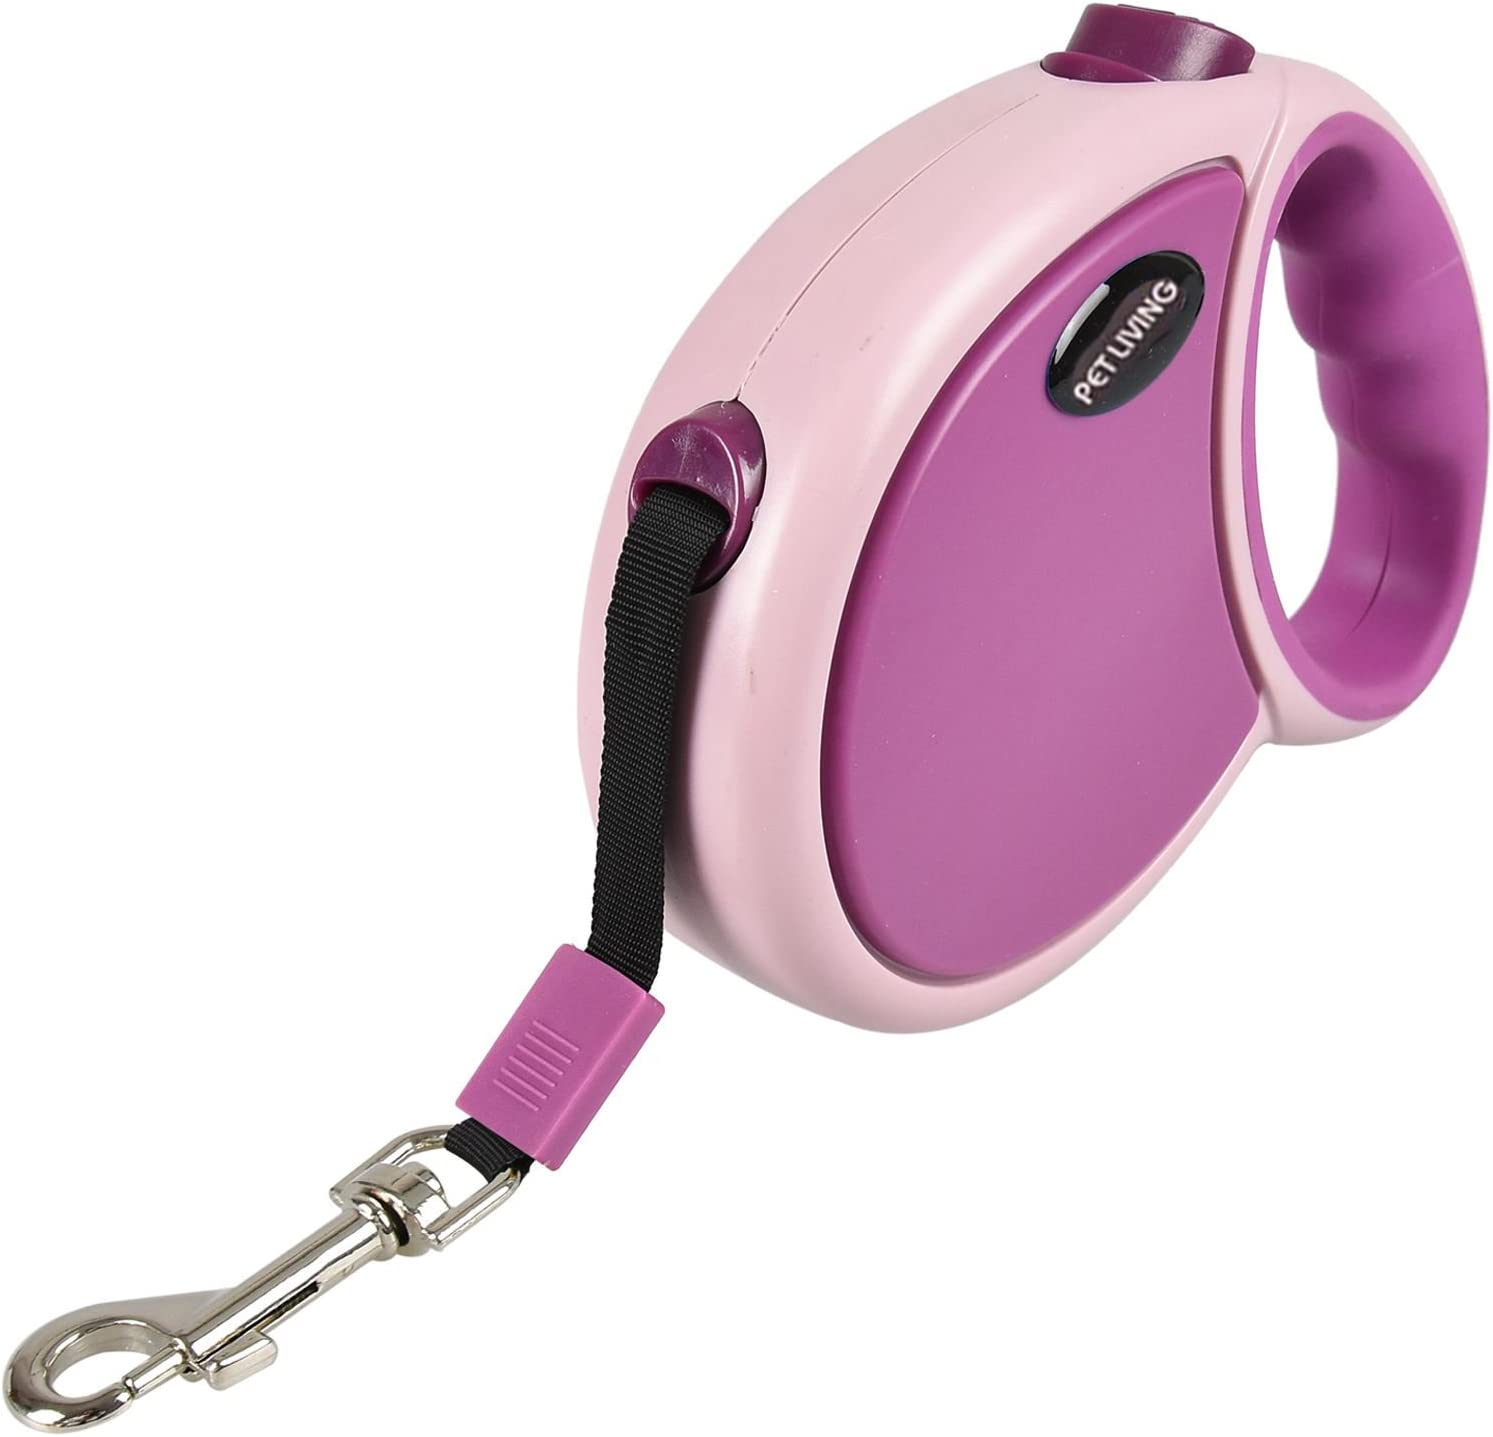 5 Meter Max 25 KG Dog, Pink Pet Dog Puppy Doggy Automatic Retractable Lead Nylon Tape Rope with Handle Grip Nylon Tape Dog Lead 3M 5M /& 7M